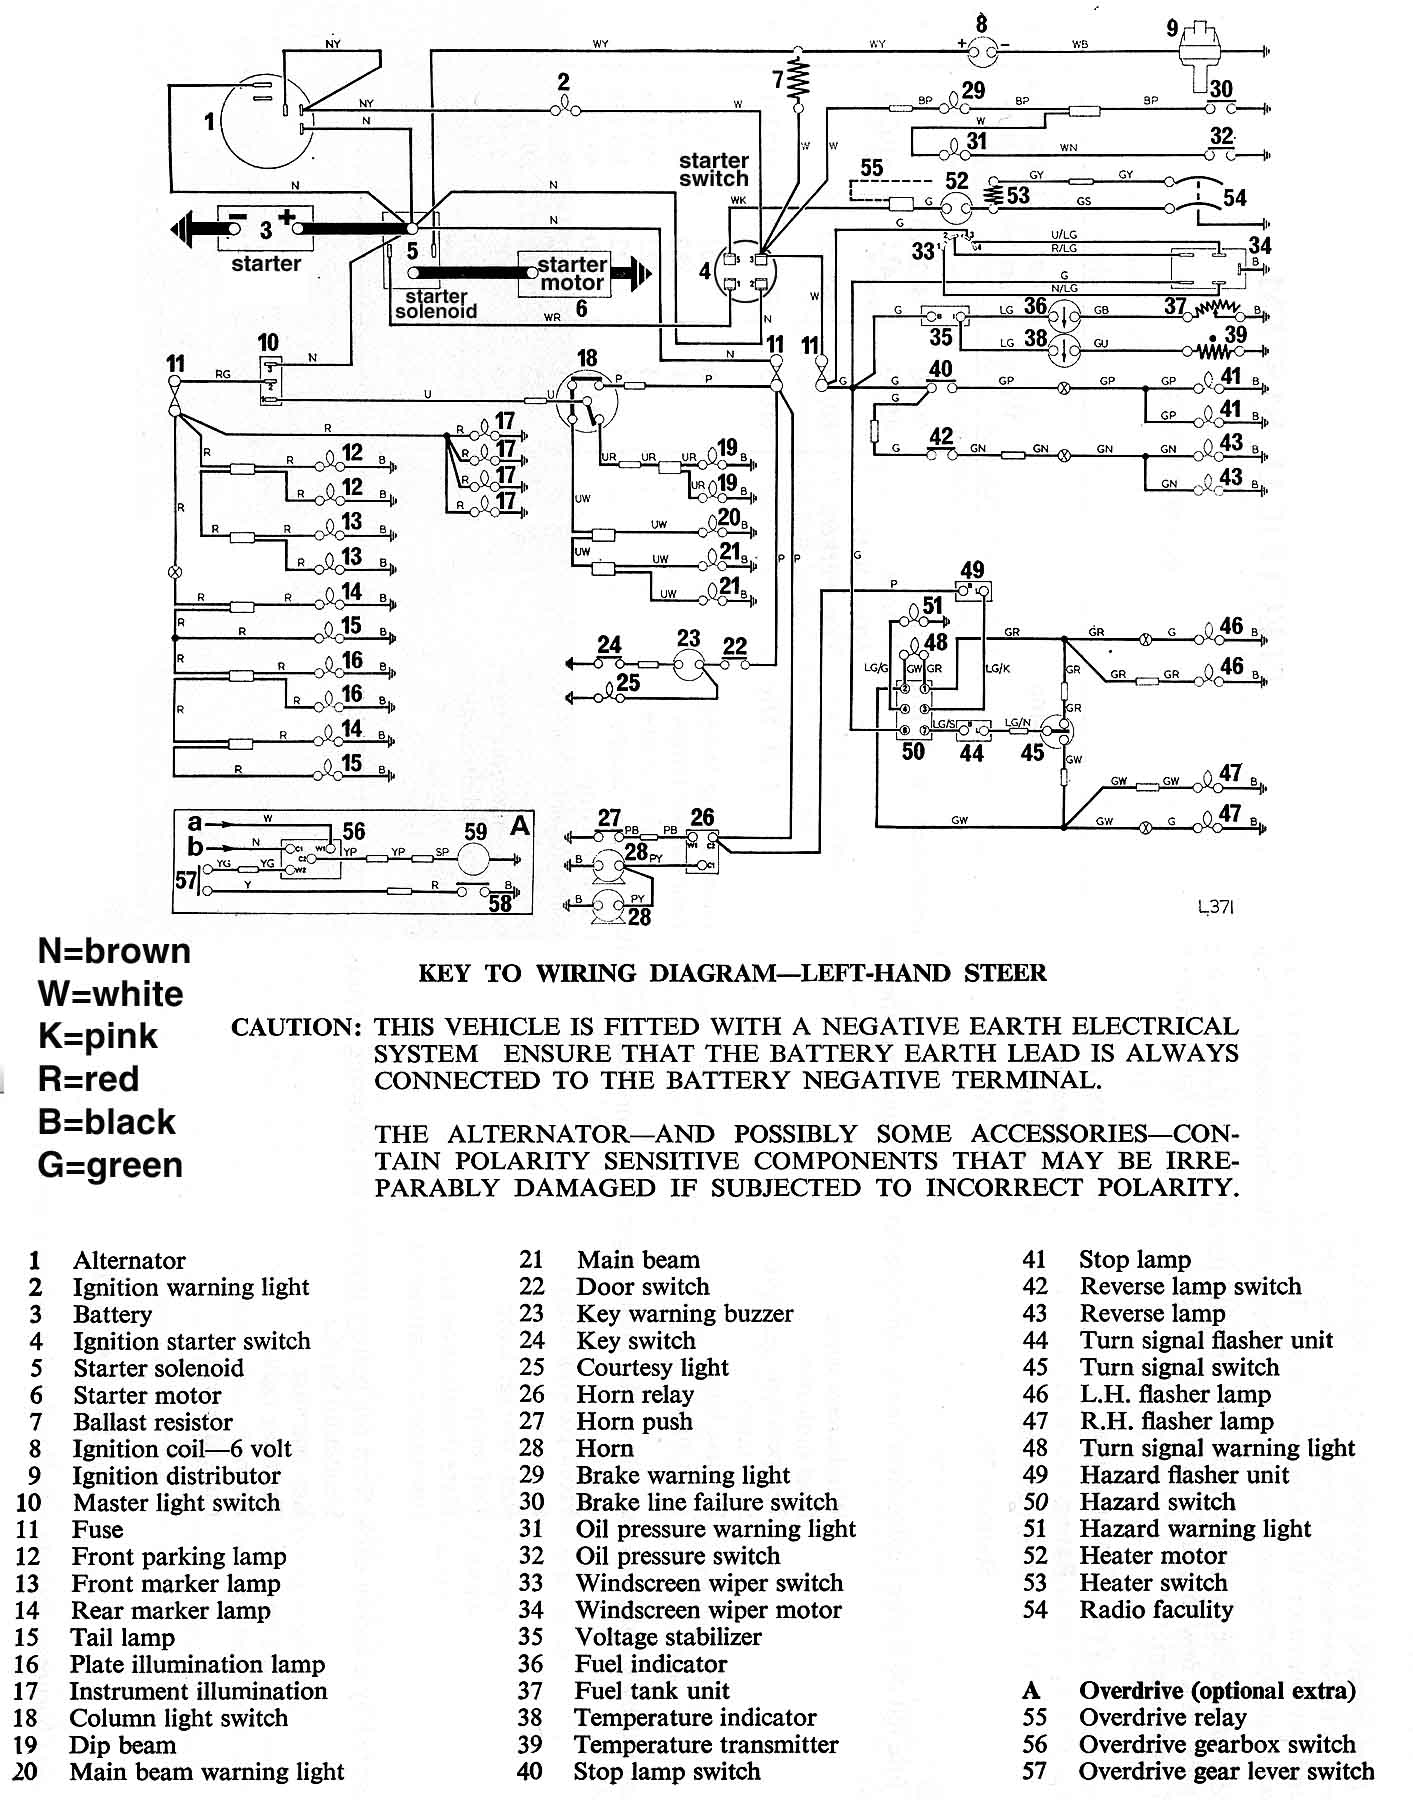 1992 miata fuel tank wiring diagram 10 exclusive hookah de \u2022